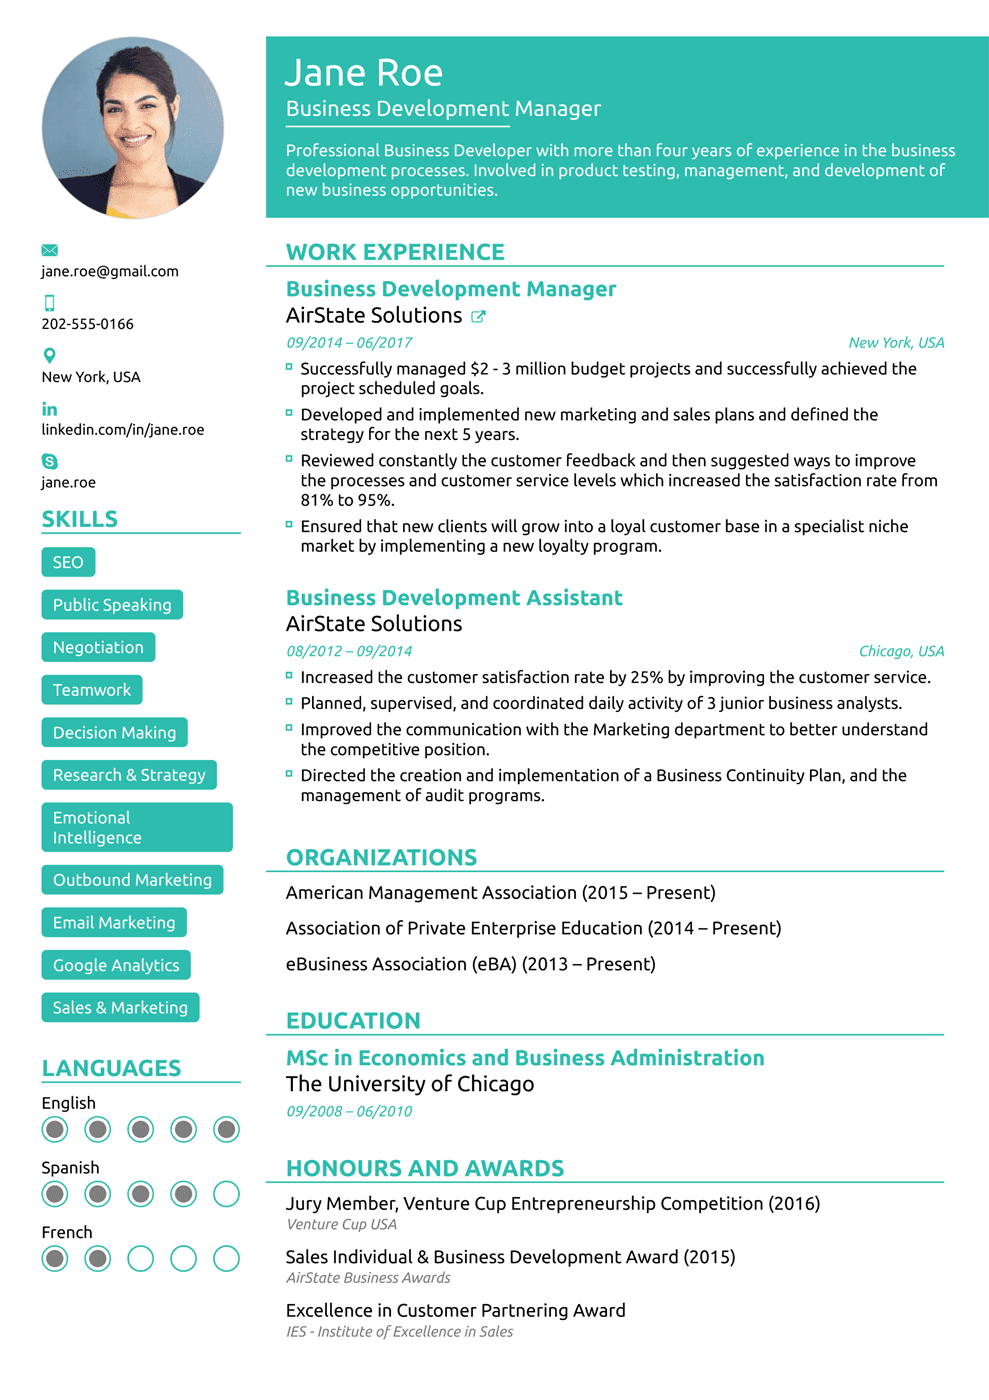 Resume Fascinating 448 Professional Resume Templates As They Should Be [48]